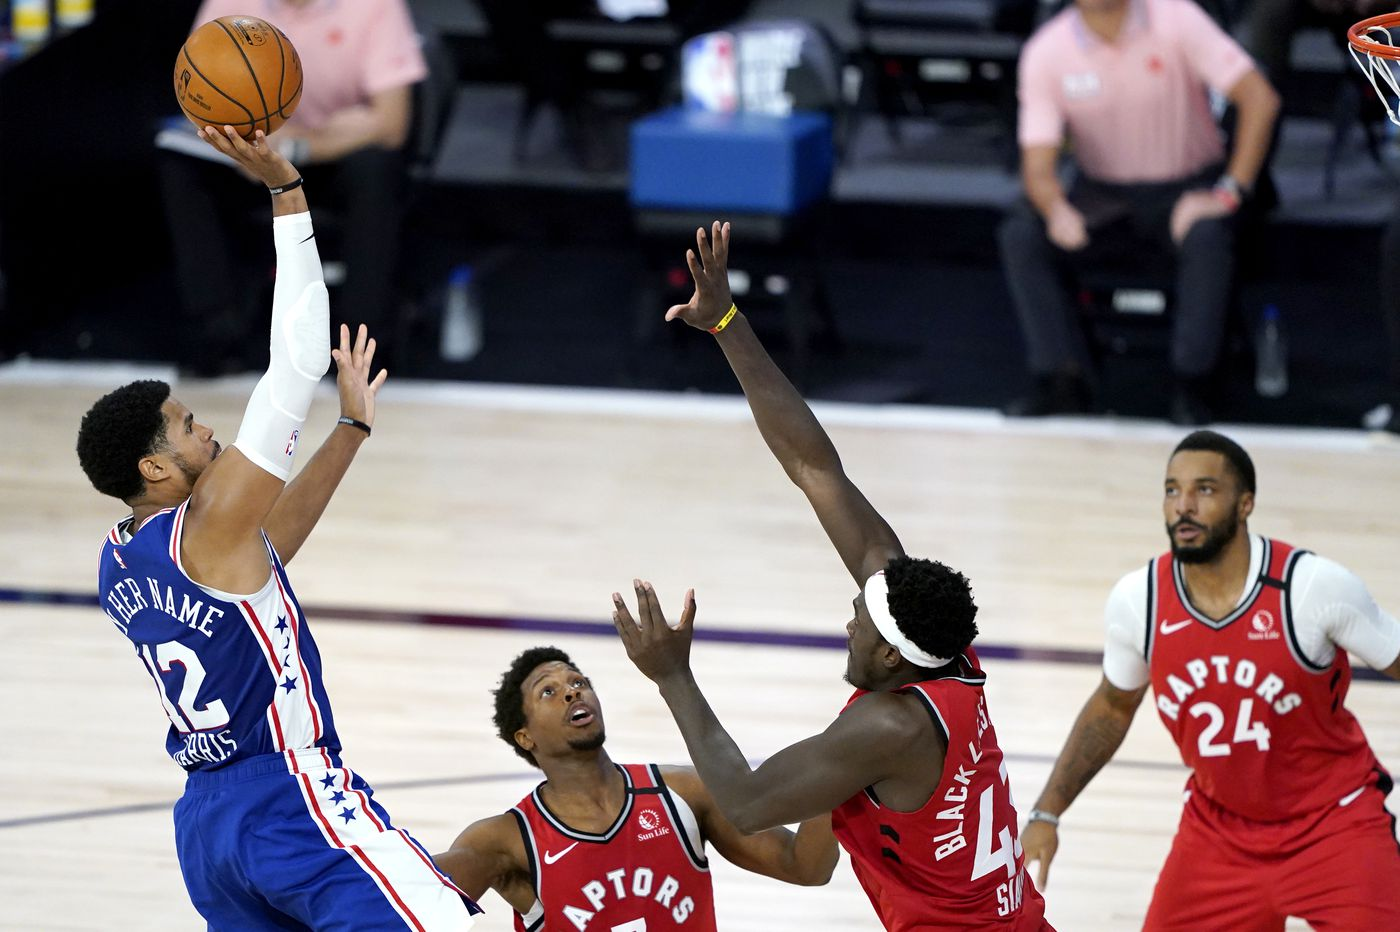 Sixers lose to Raptors in meaningless game, brace for playoff date with Boston Celtics